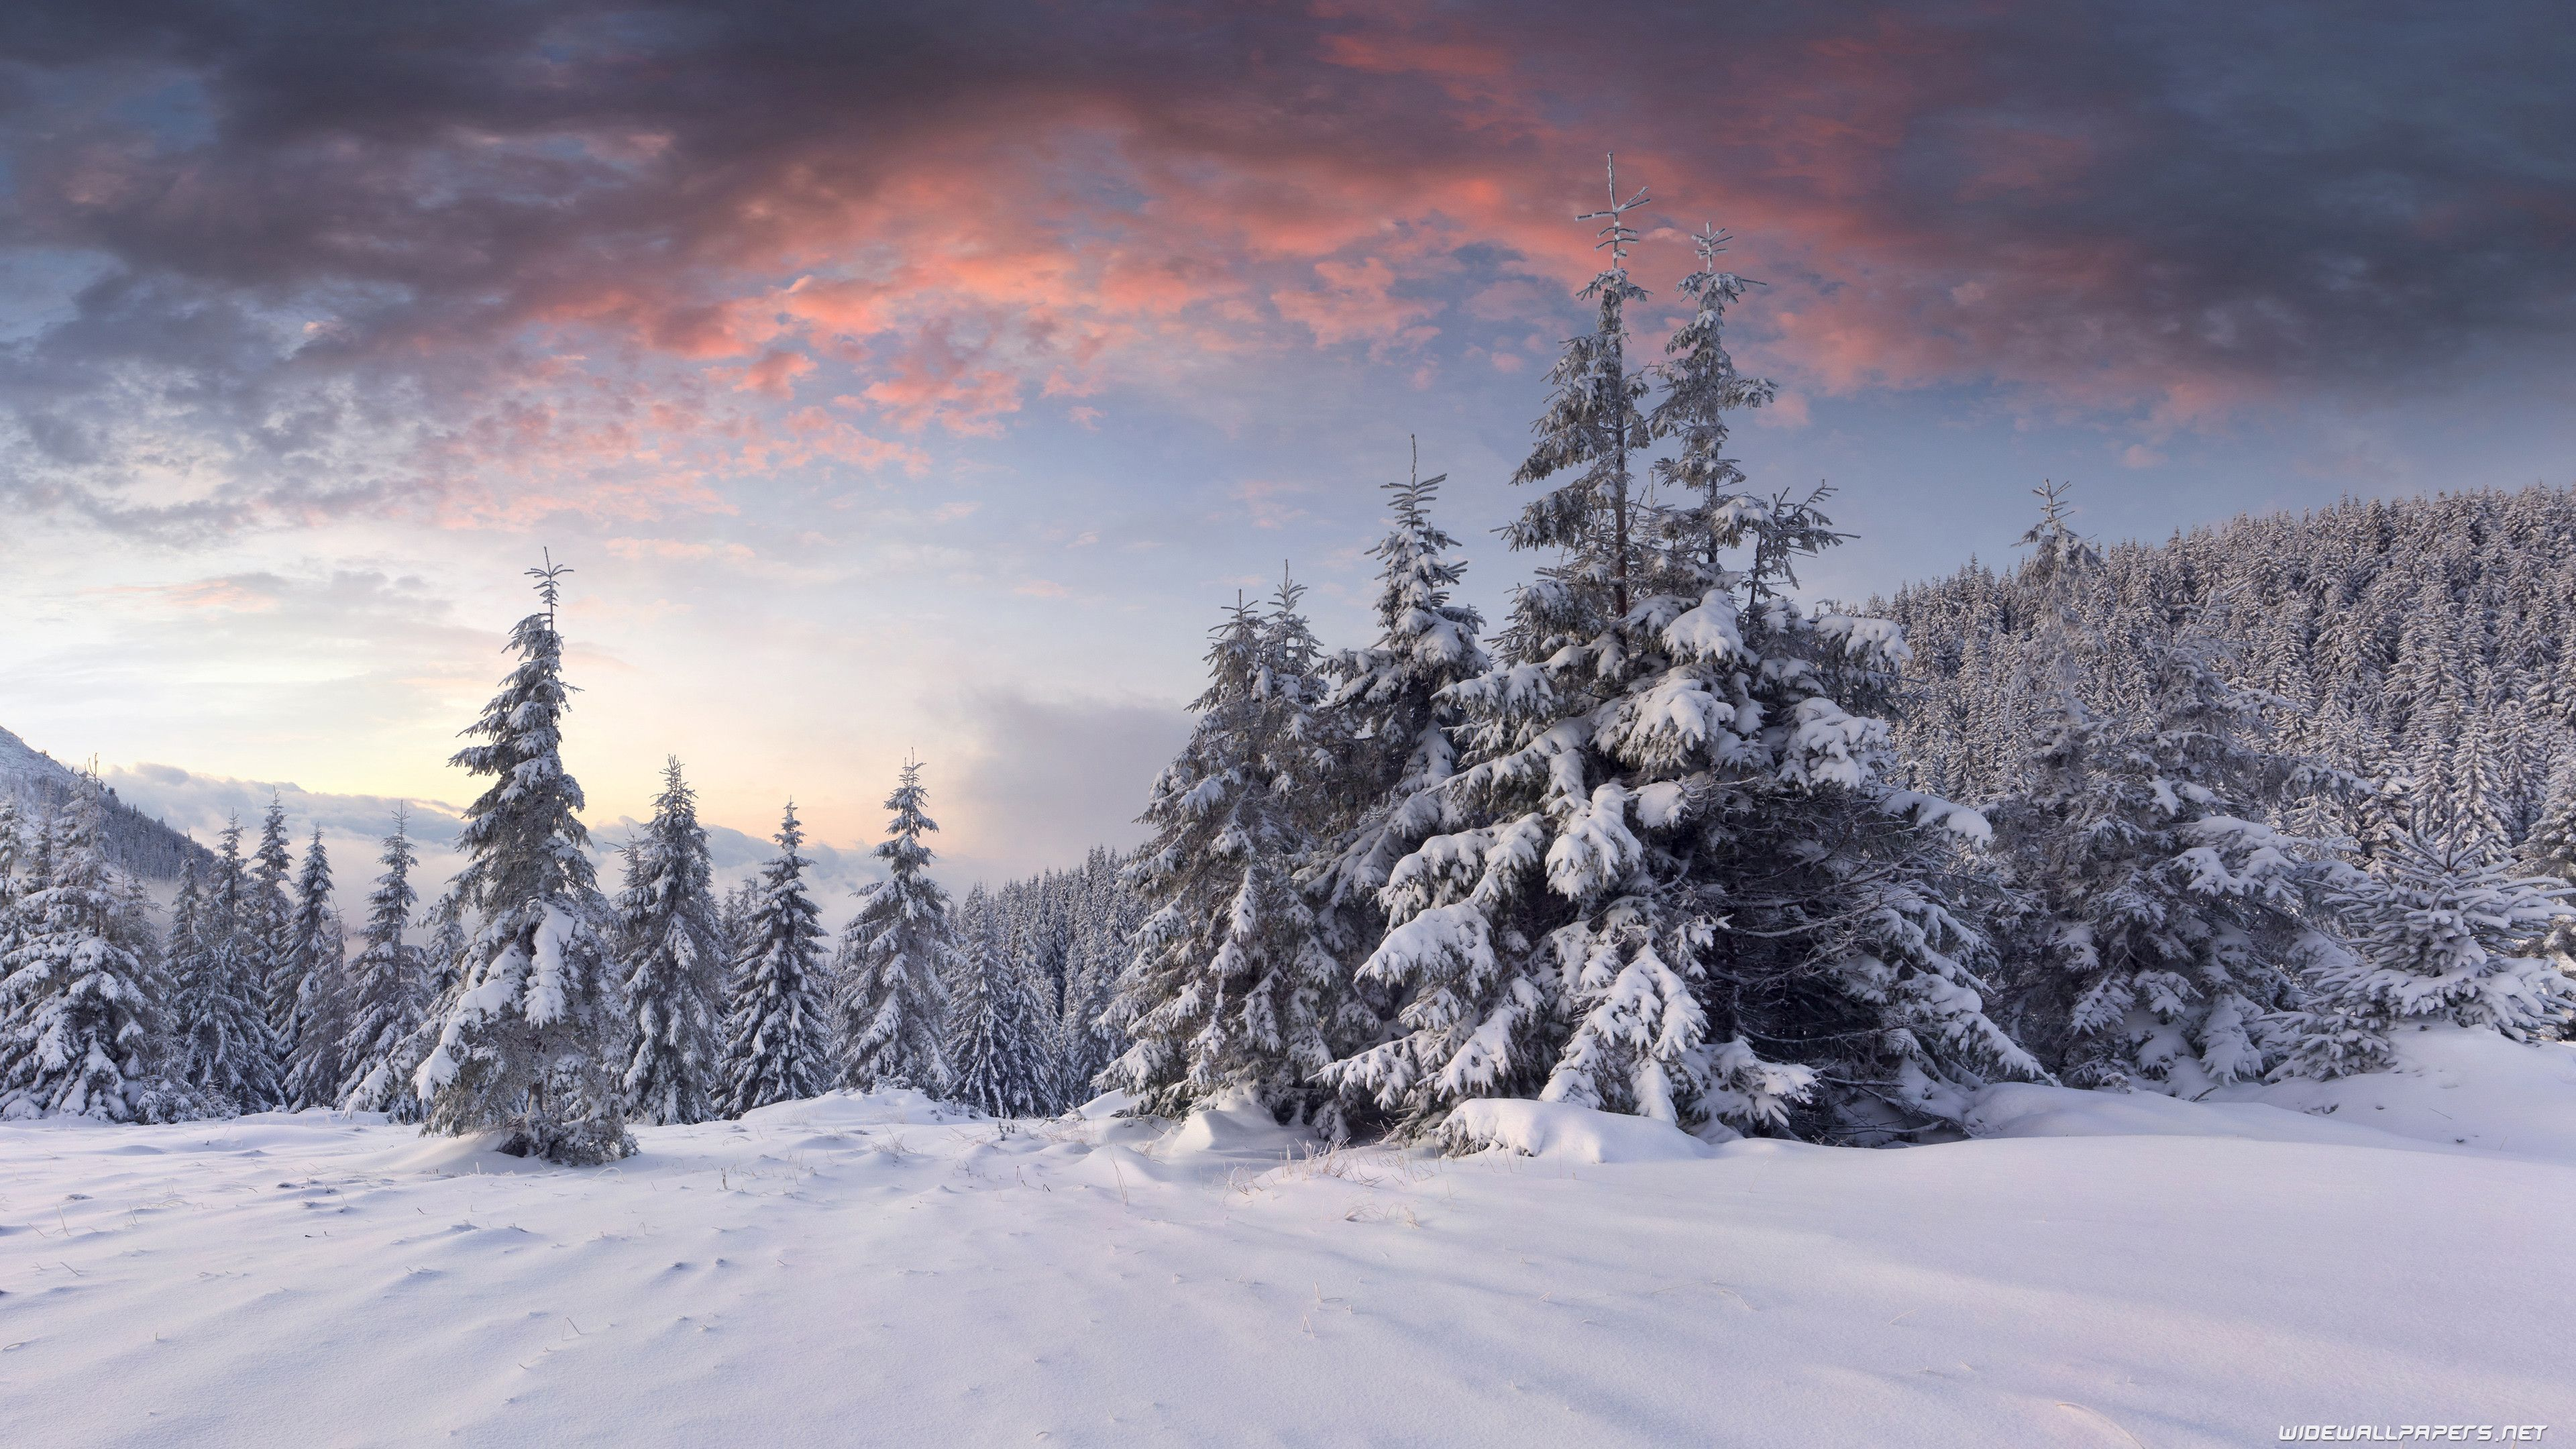 Ultra Hd Winter Wallpapers Top Free Ultra Hd Winter